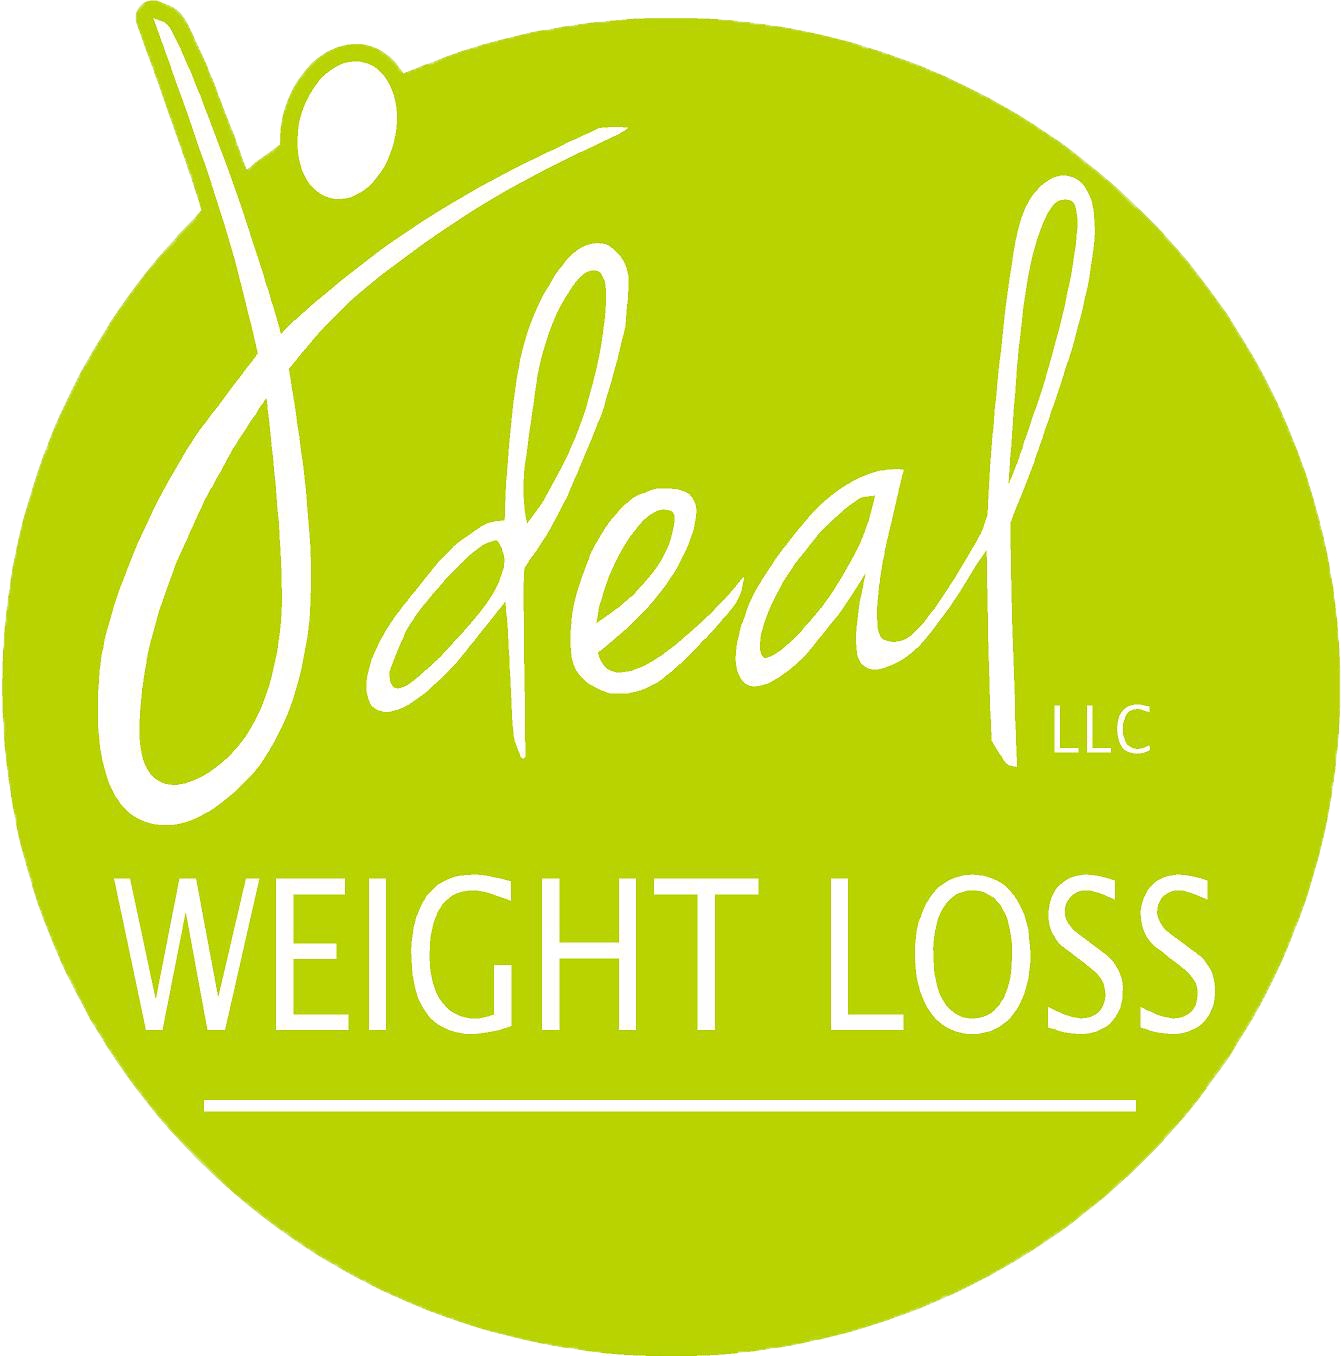 Ideal Weight Loss LLC